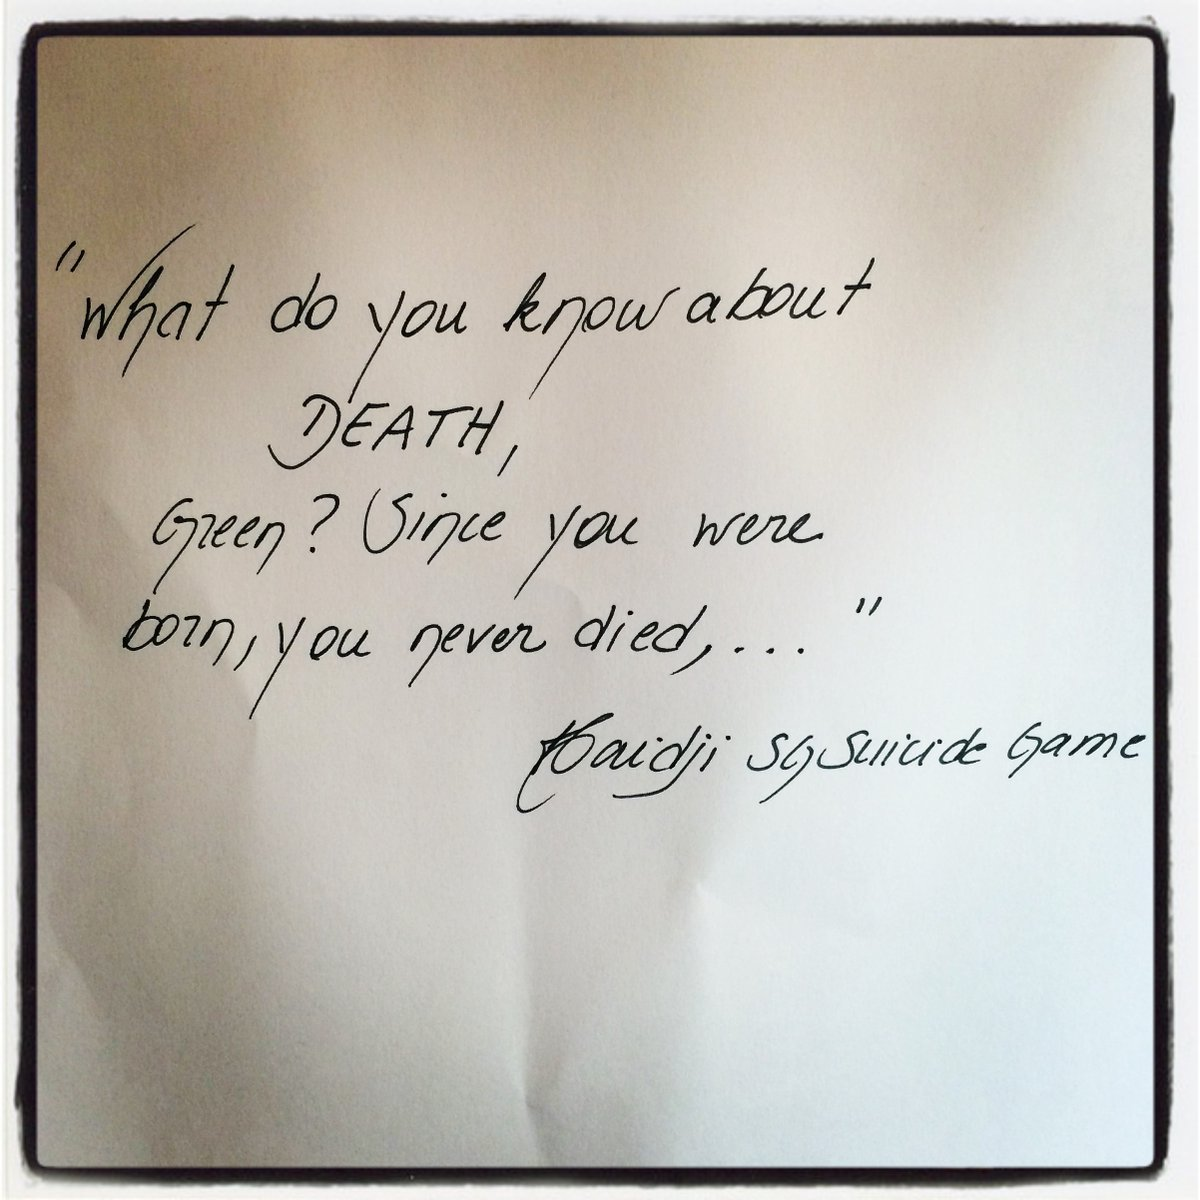 """Book Quote: """"What do you know about DEATH, Green? ..."""" Click on  https://haidji.blogspot.com/2020/07/to-see-all-books-on-amazon-click-on.html?spref=tw… #life #death #quoteoftheday #dailyquote #haidji #quotes #quote #bookquote #bookquotes #reading #books #amazonbooks #kindleunlimited #ebook #paperback #read #BookBoostpic.twitter.com/2s34q35Dx2"""